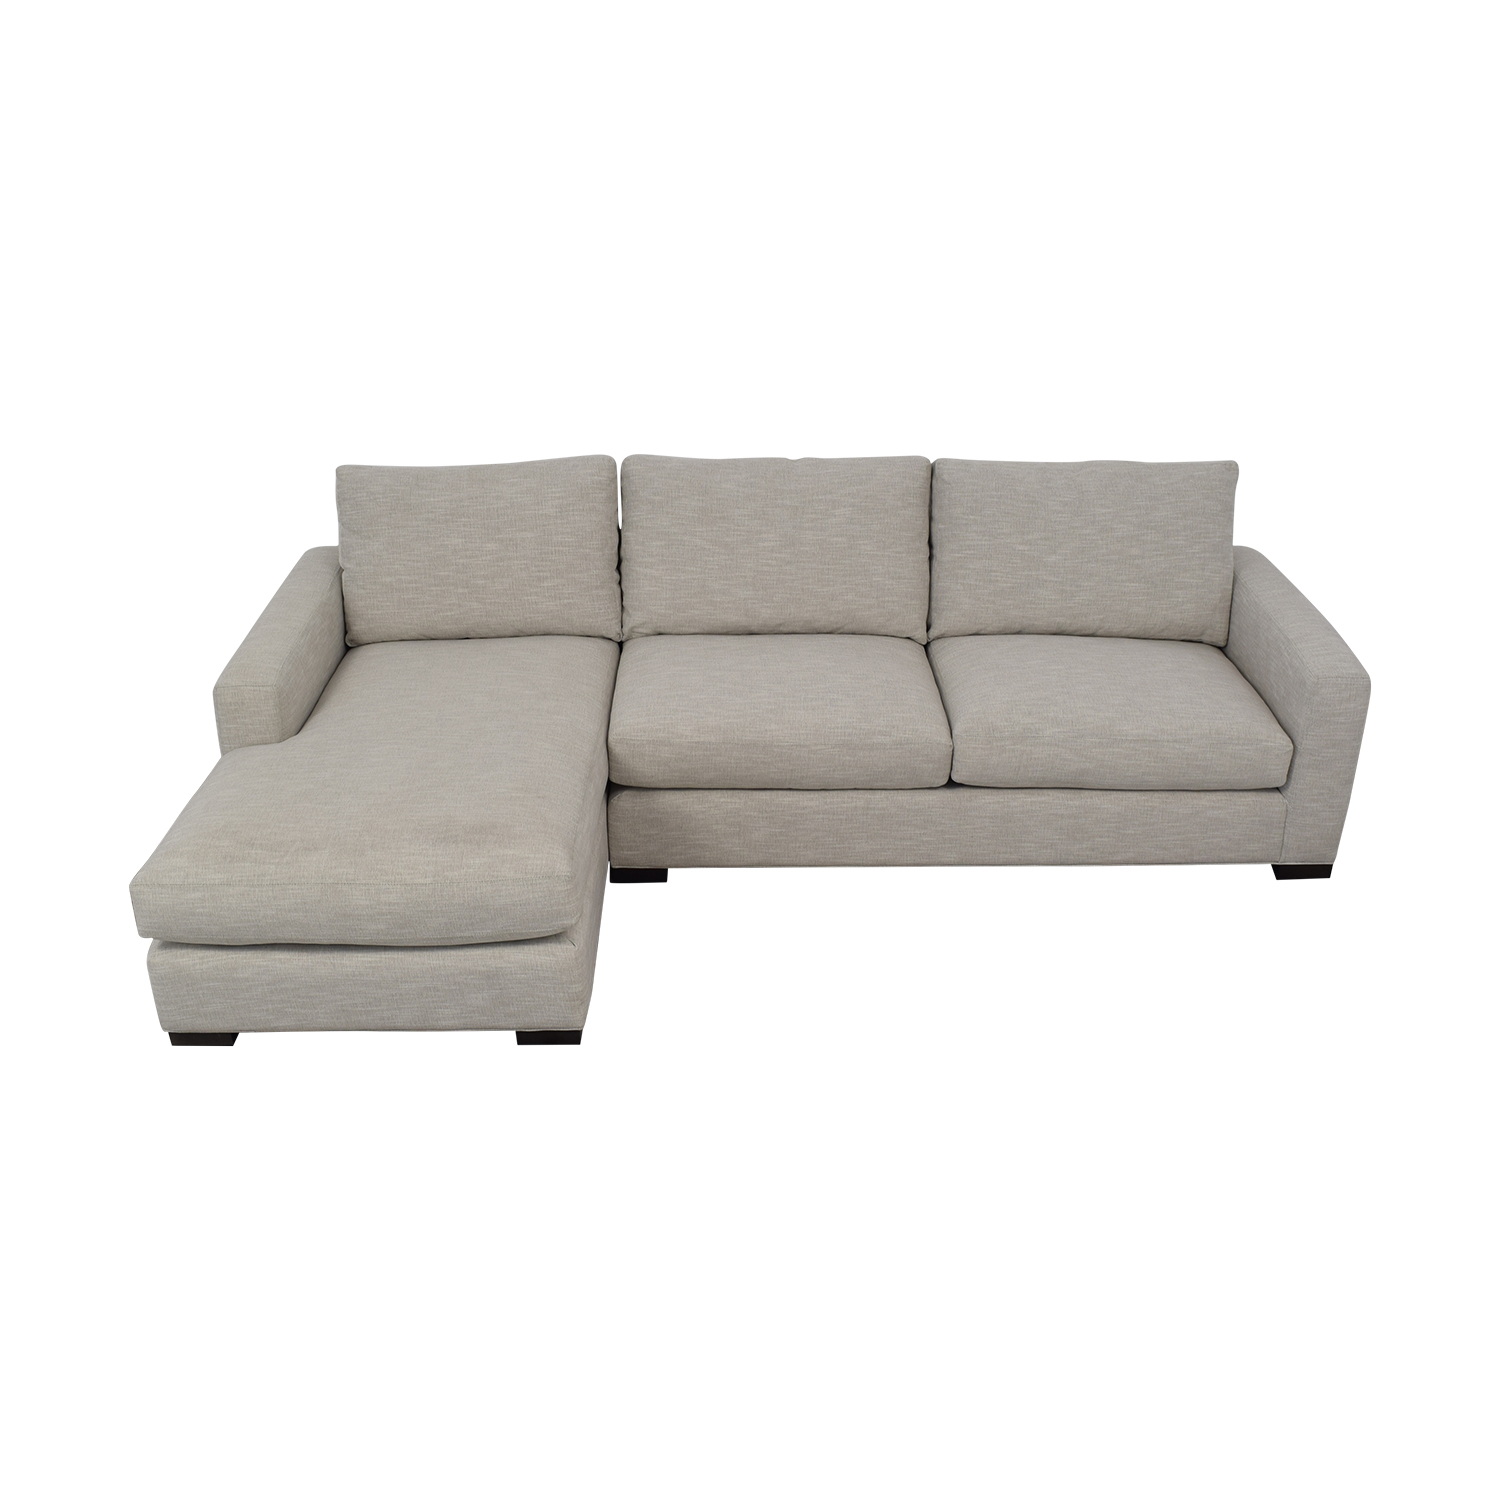 Room & Board Room & Board Metro Sofa with Chaise Sectionals